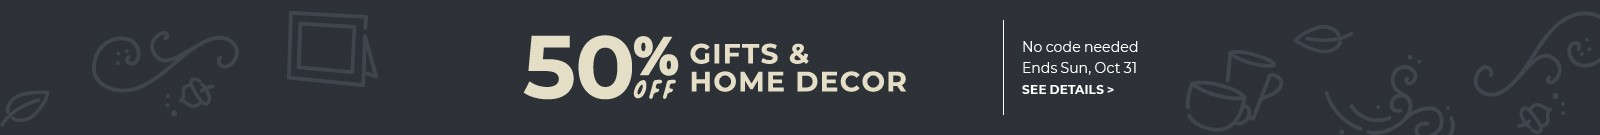 50% off gifts & home decor, no code needed, ends Sun, Oct 31, see details